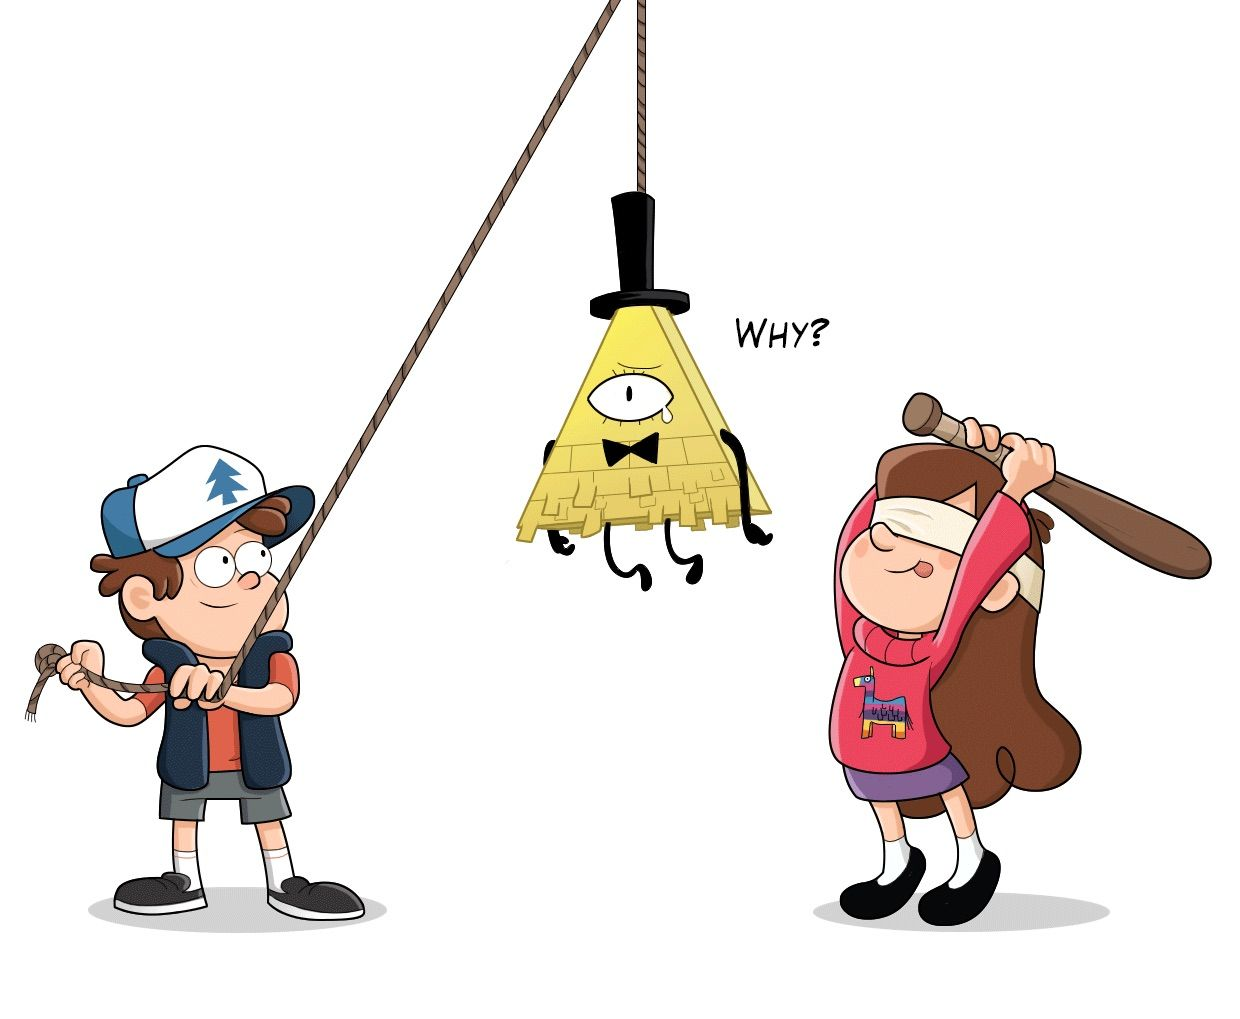 Haha poor bill.. but this is what happens when you mess with the pines! XD